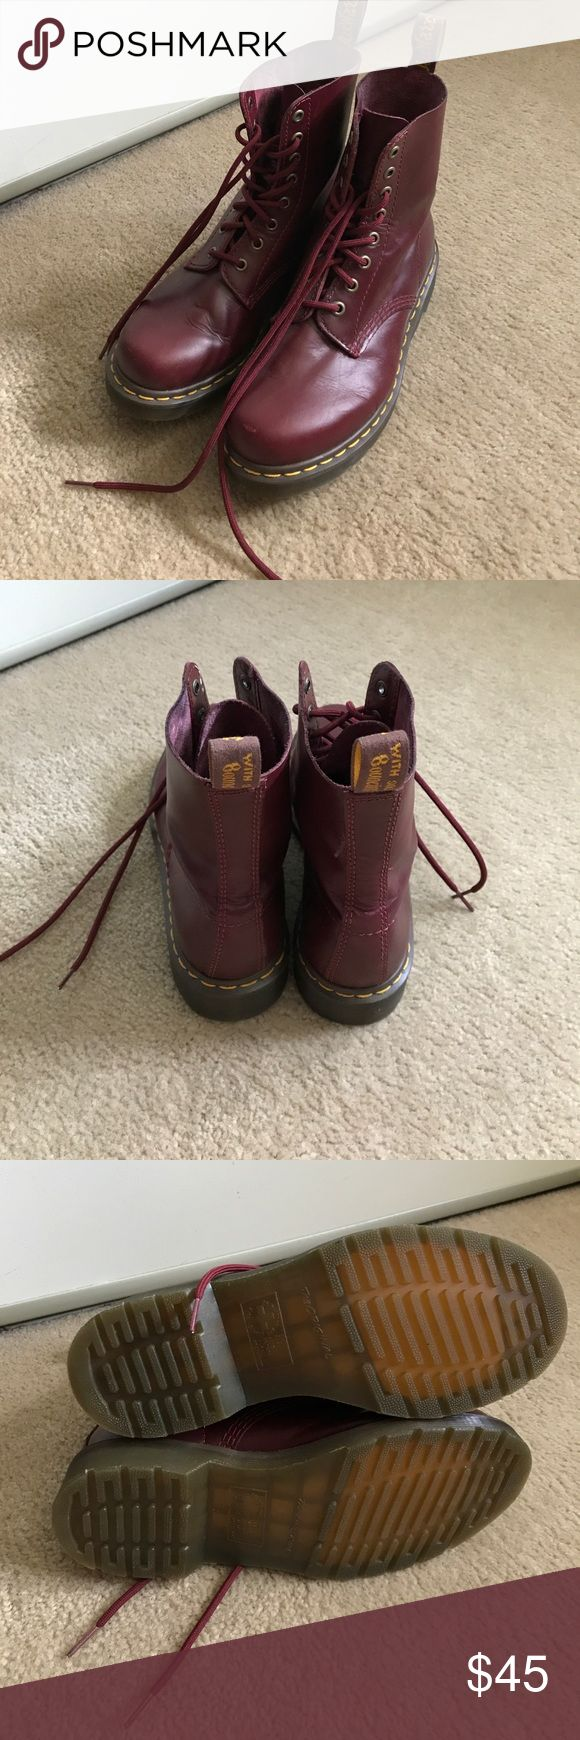 Women's Maroon Dr.Marten boots Size 8 red Dr.marten boots. In good condition. Only worn them once. Dr. Martens Shoes Combat & Moto Boots